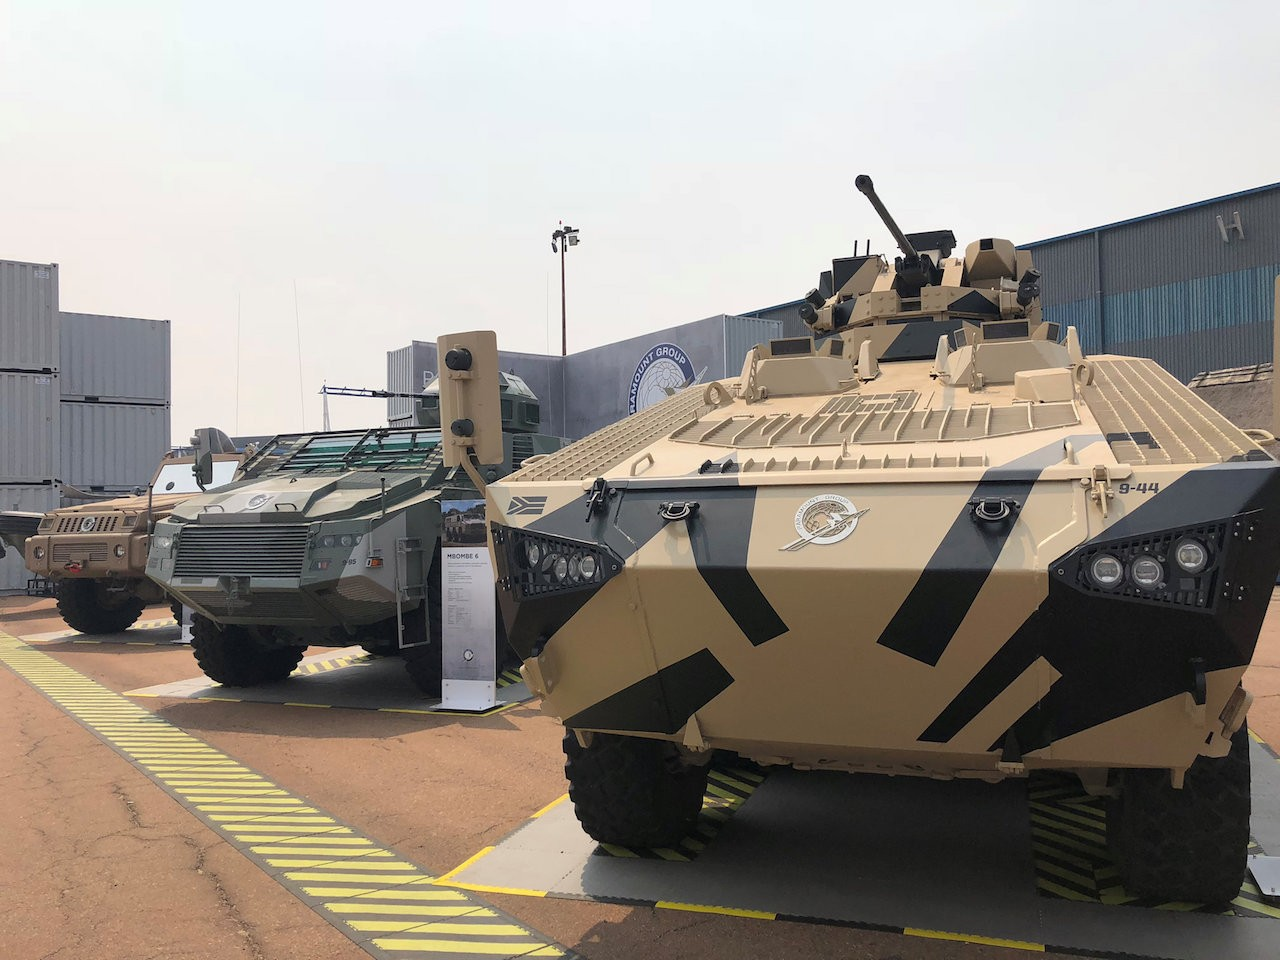 Saudis seek wide-ranging deals with South African arms firms